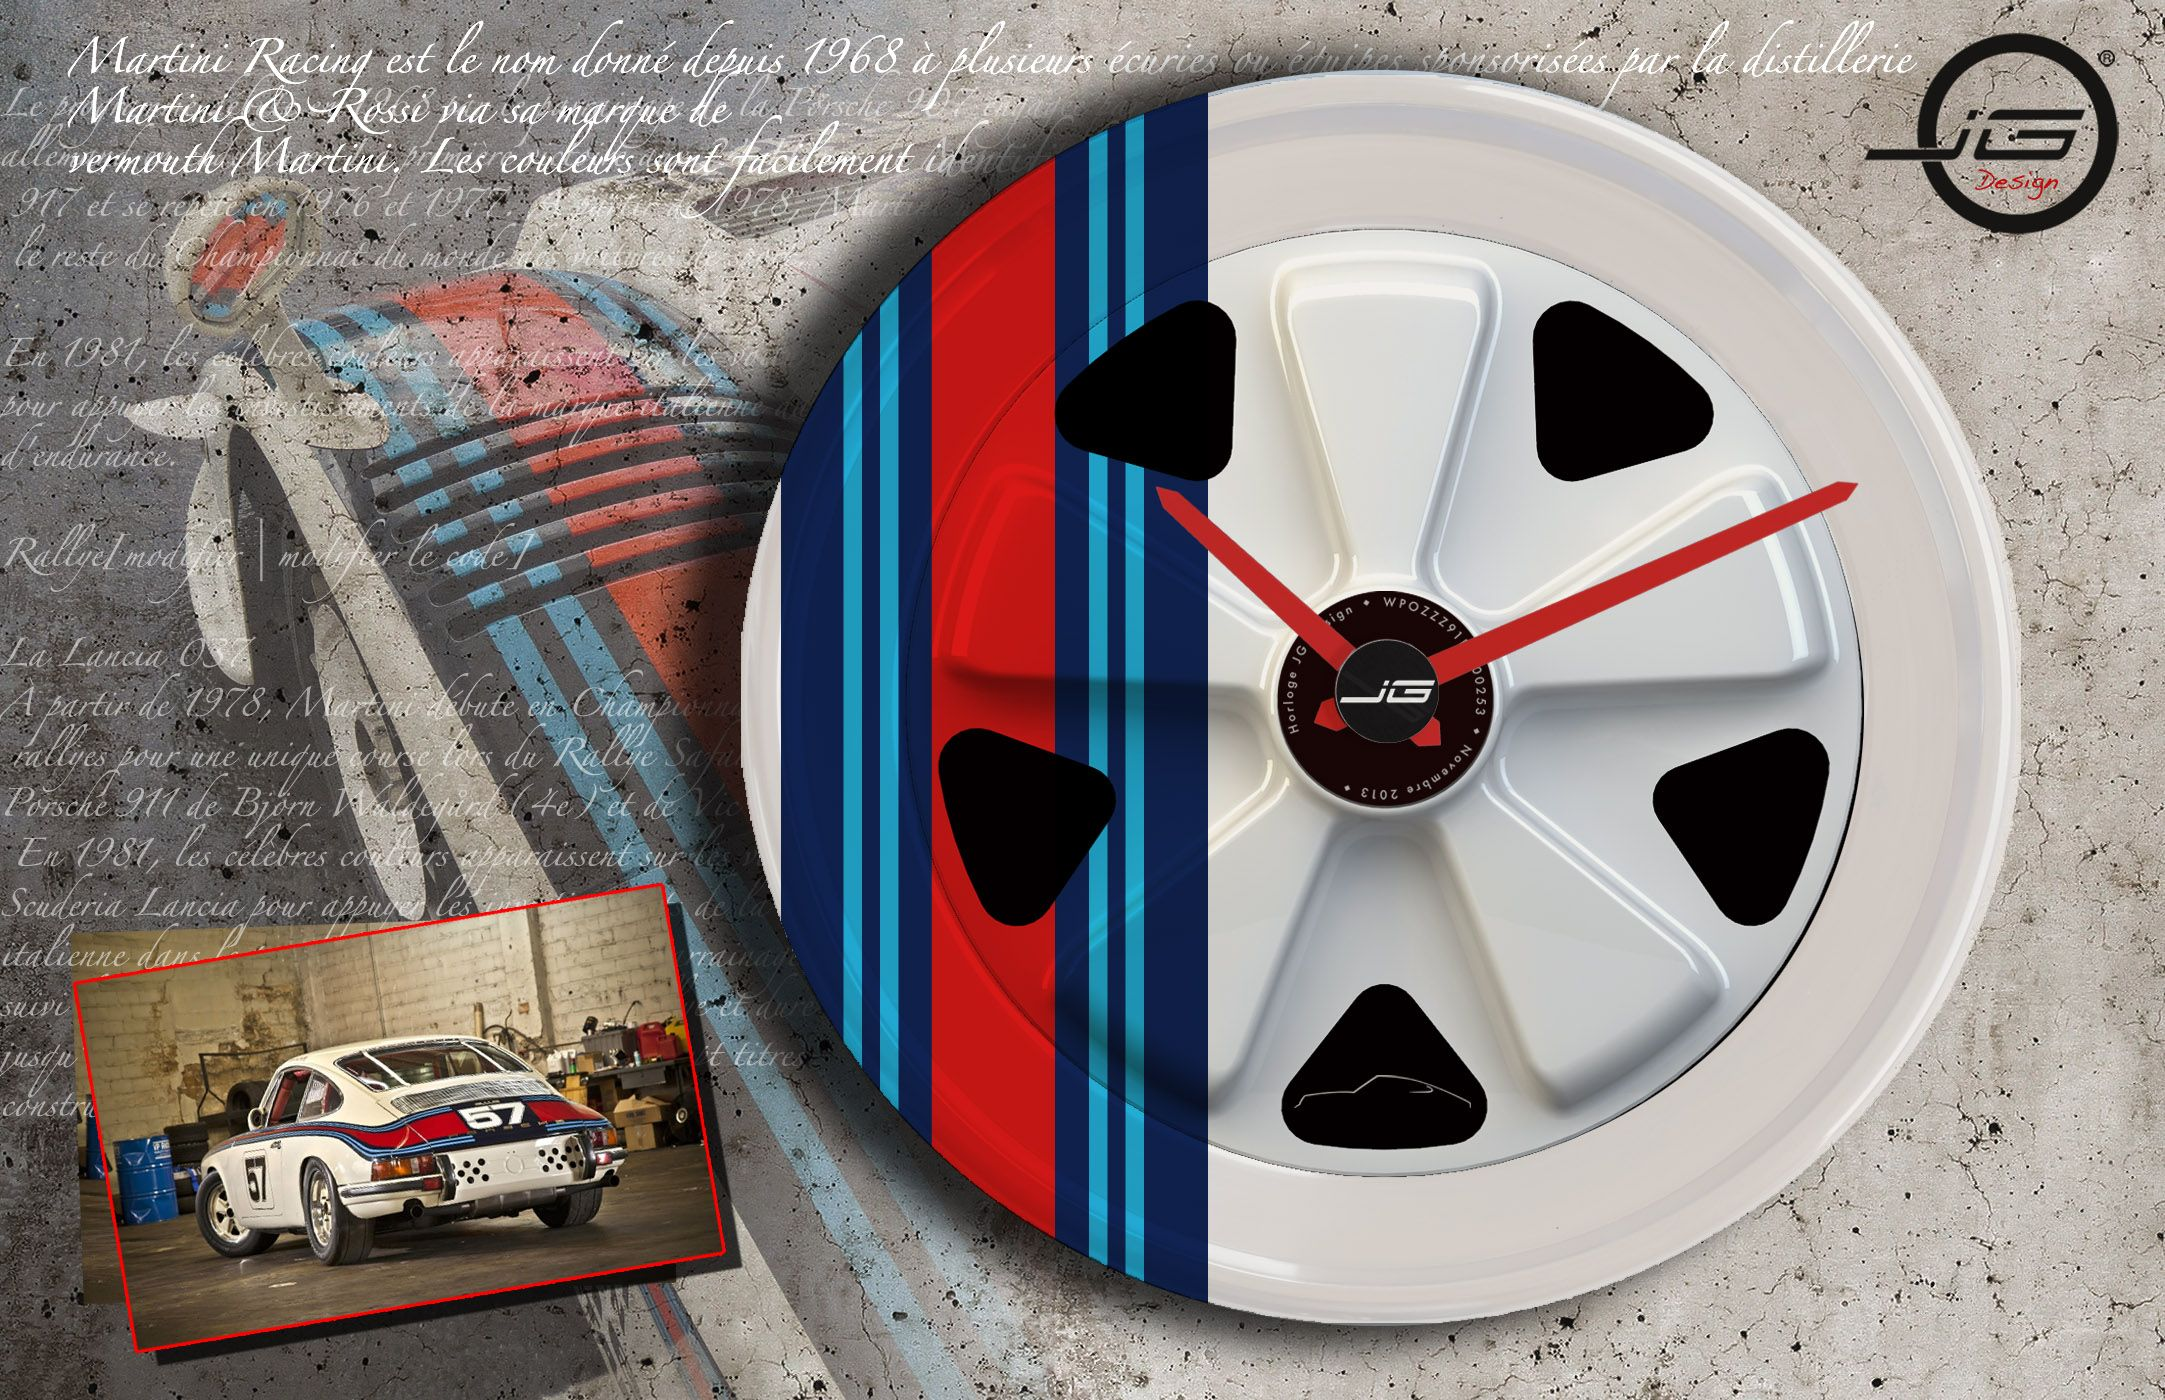 Martini Wall Clock Decoration Martini